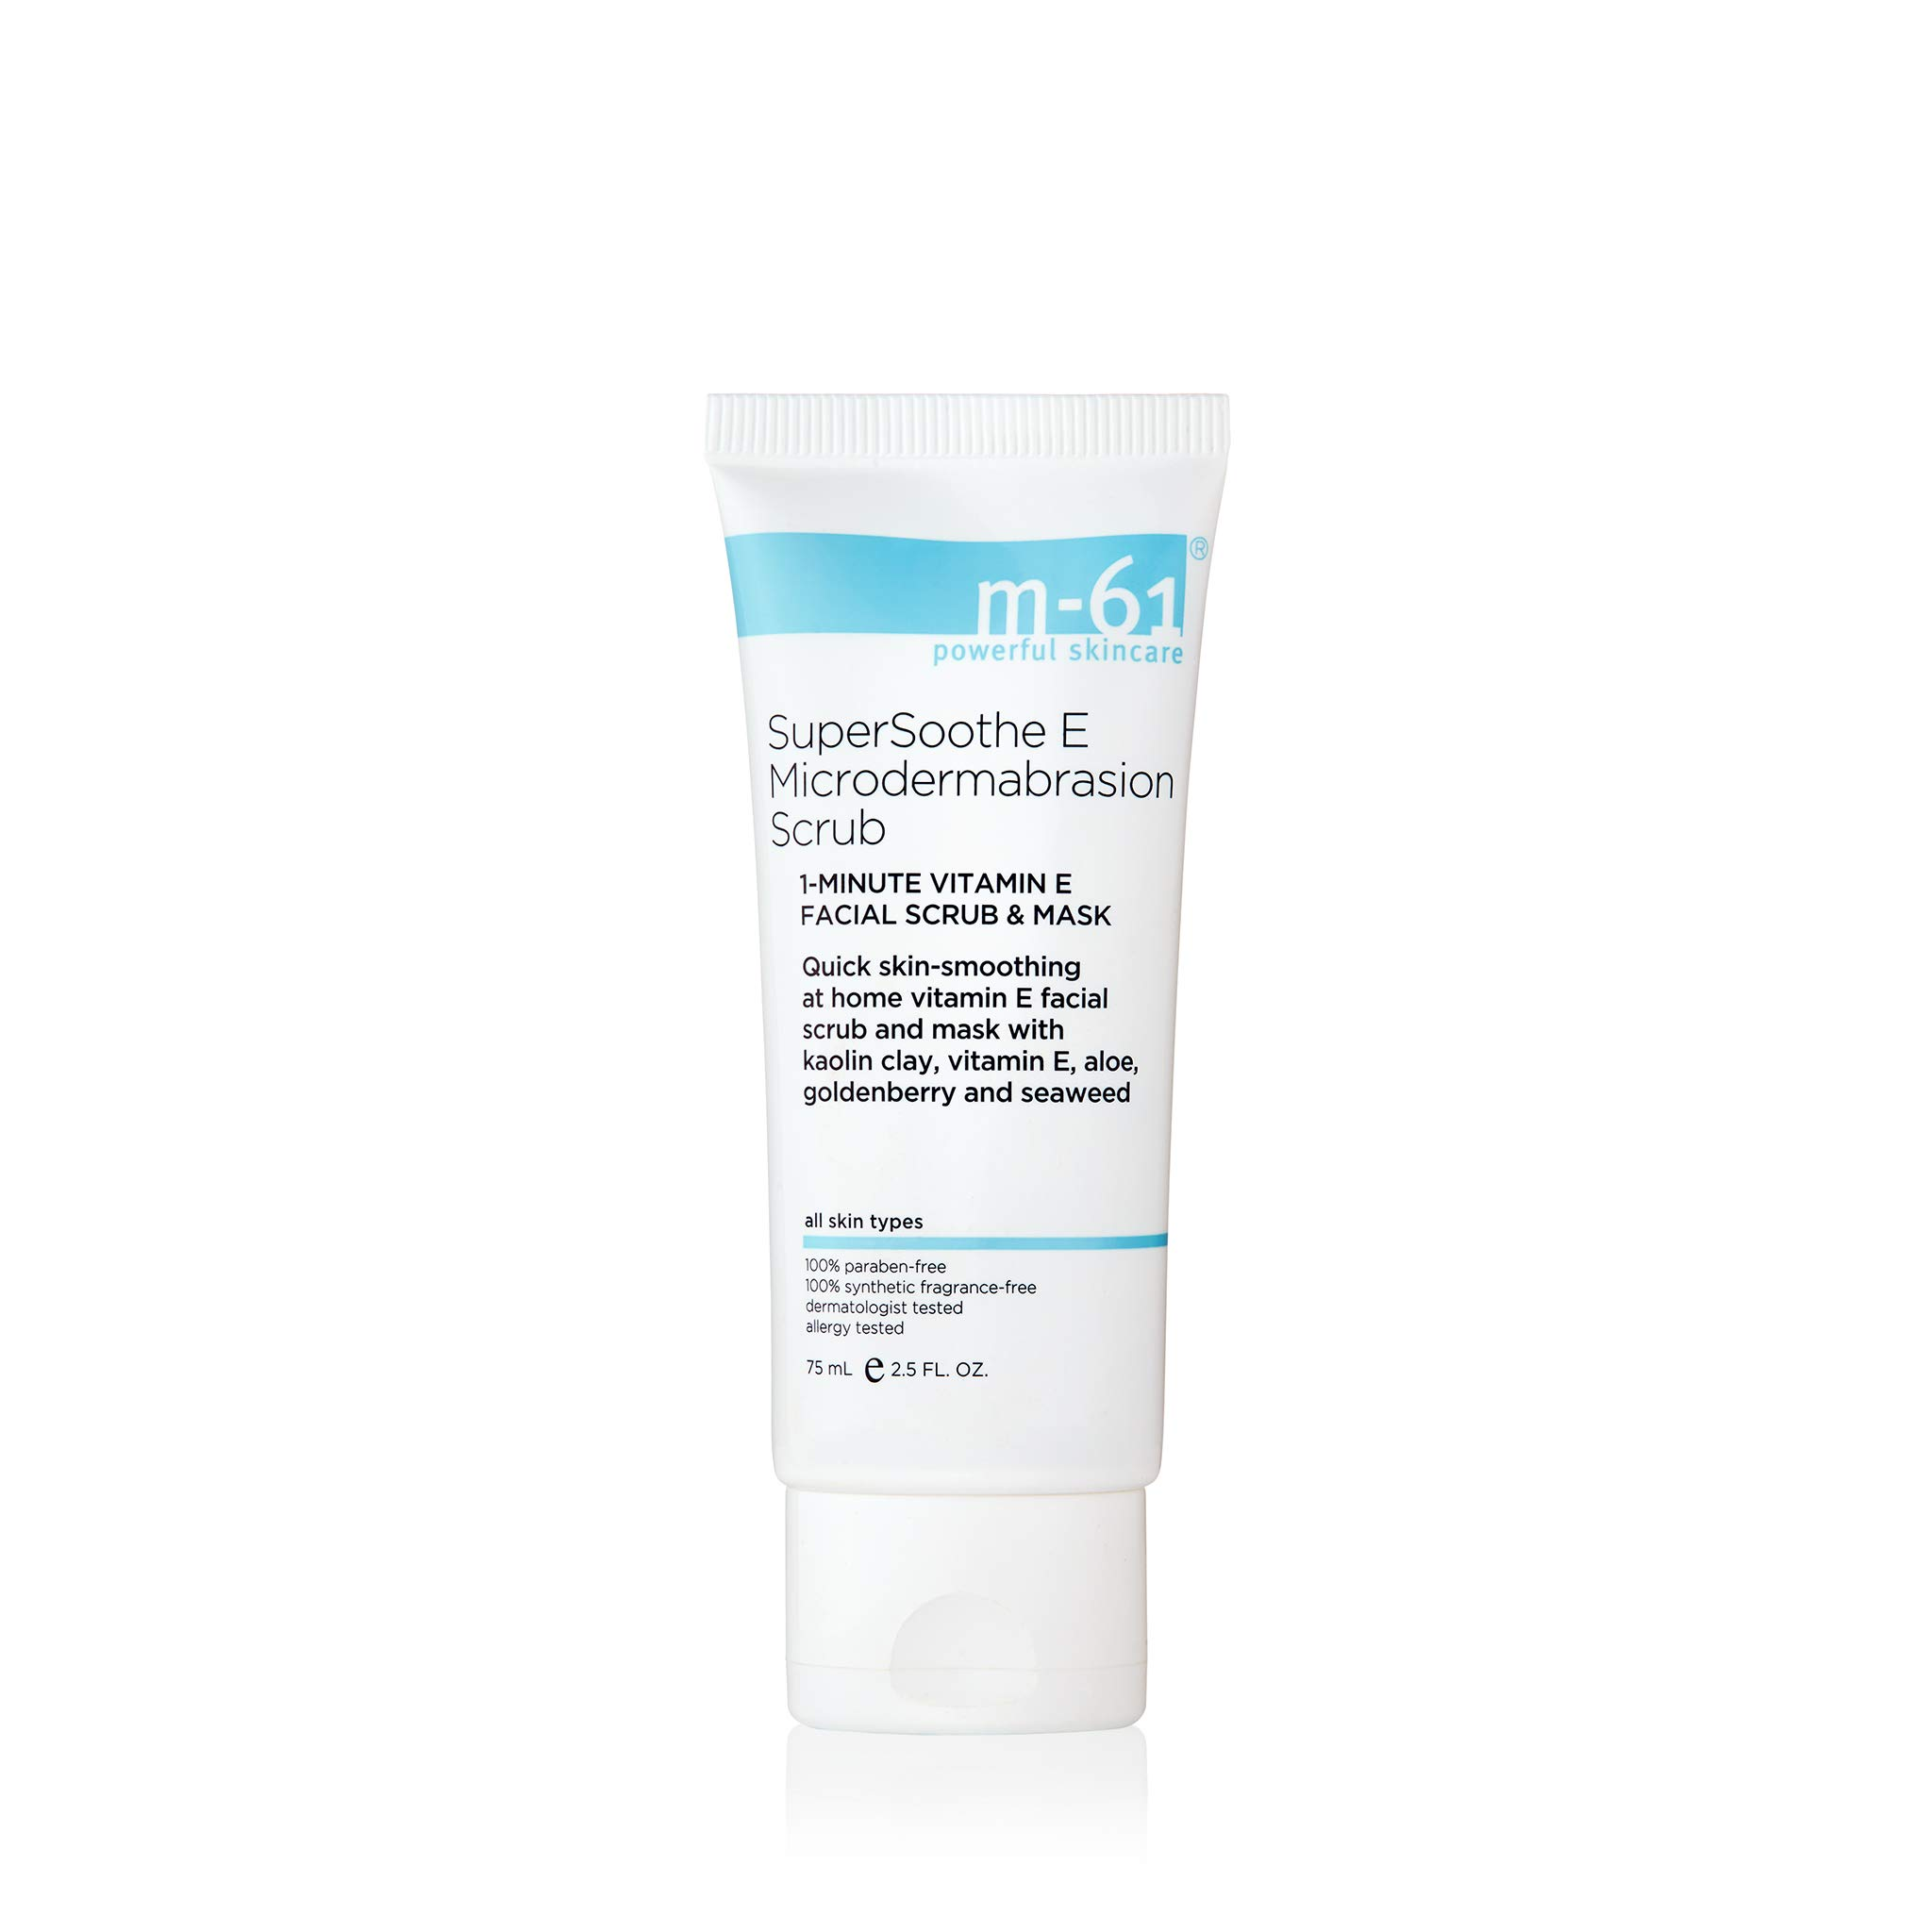 M-61 SuperSoothe E Microdermabrasion Scrub